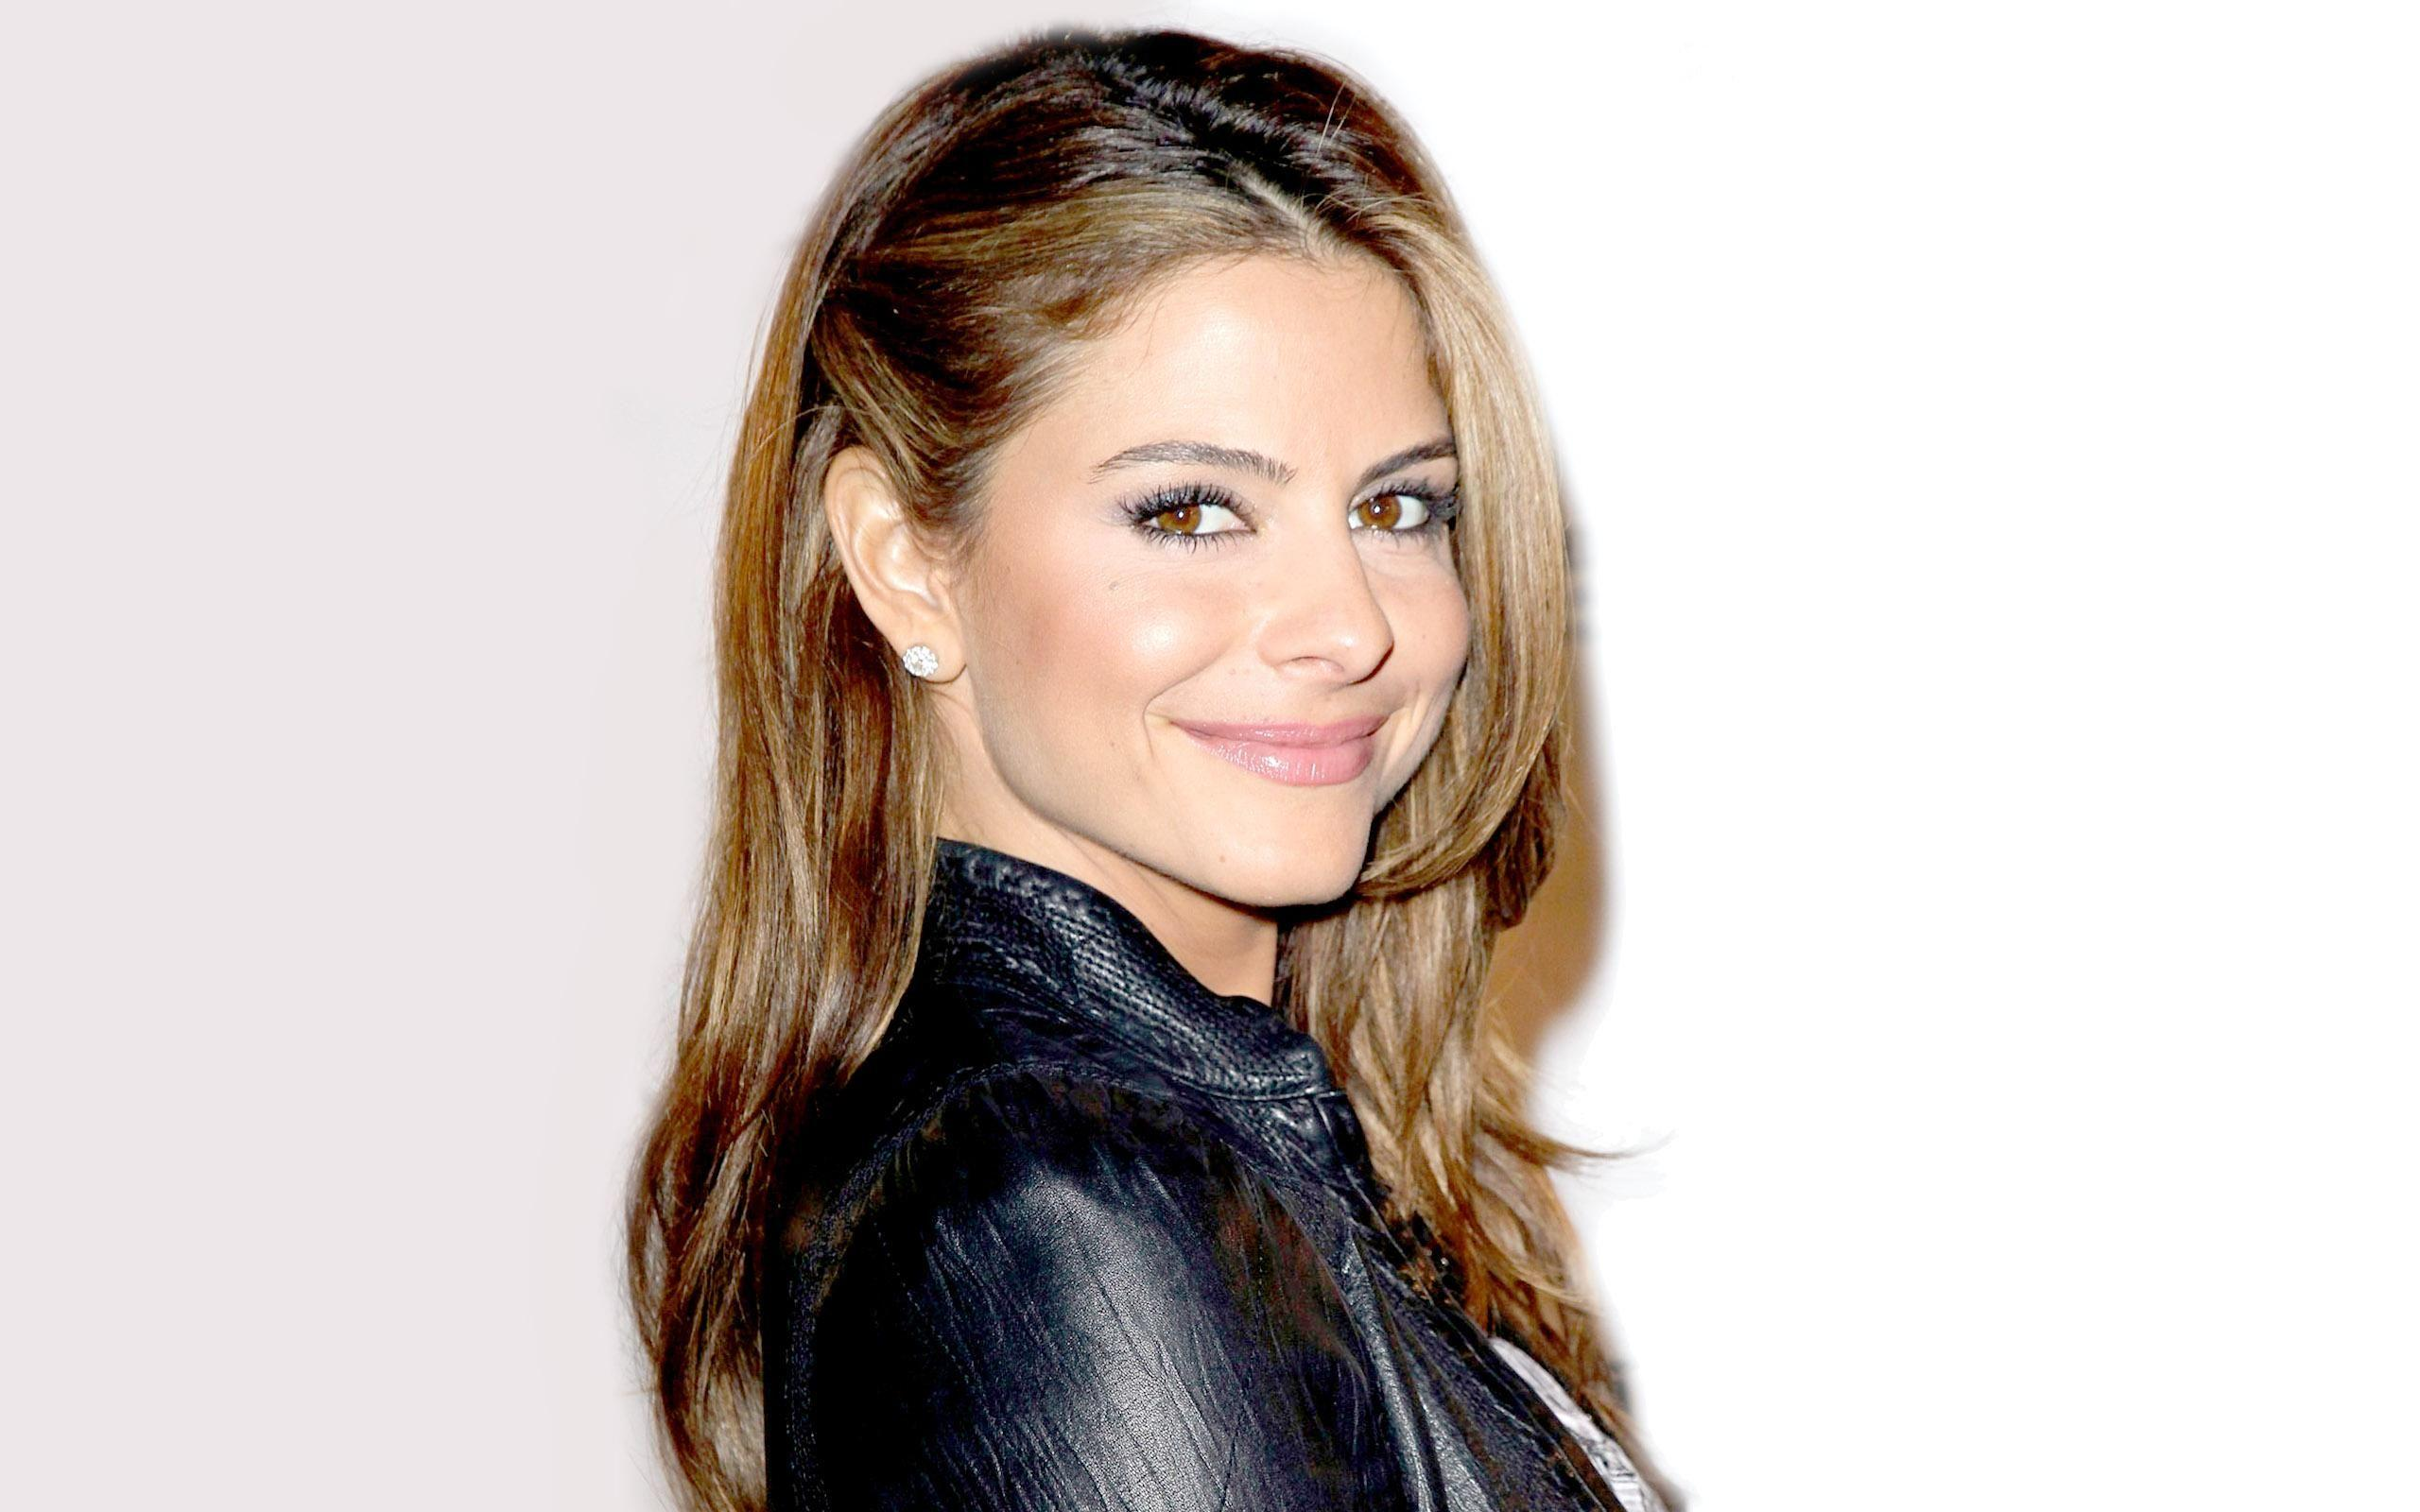 Maria Menounos Wallpapers HD Download